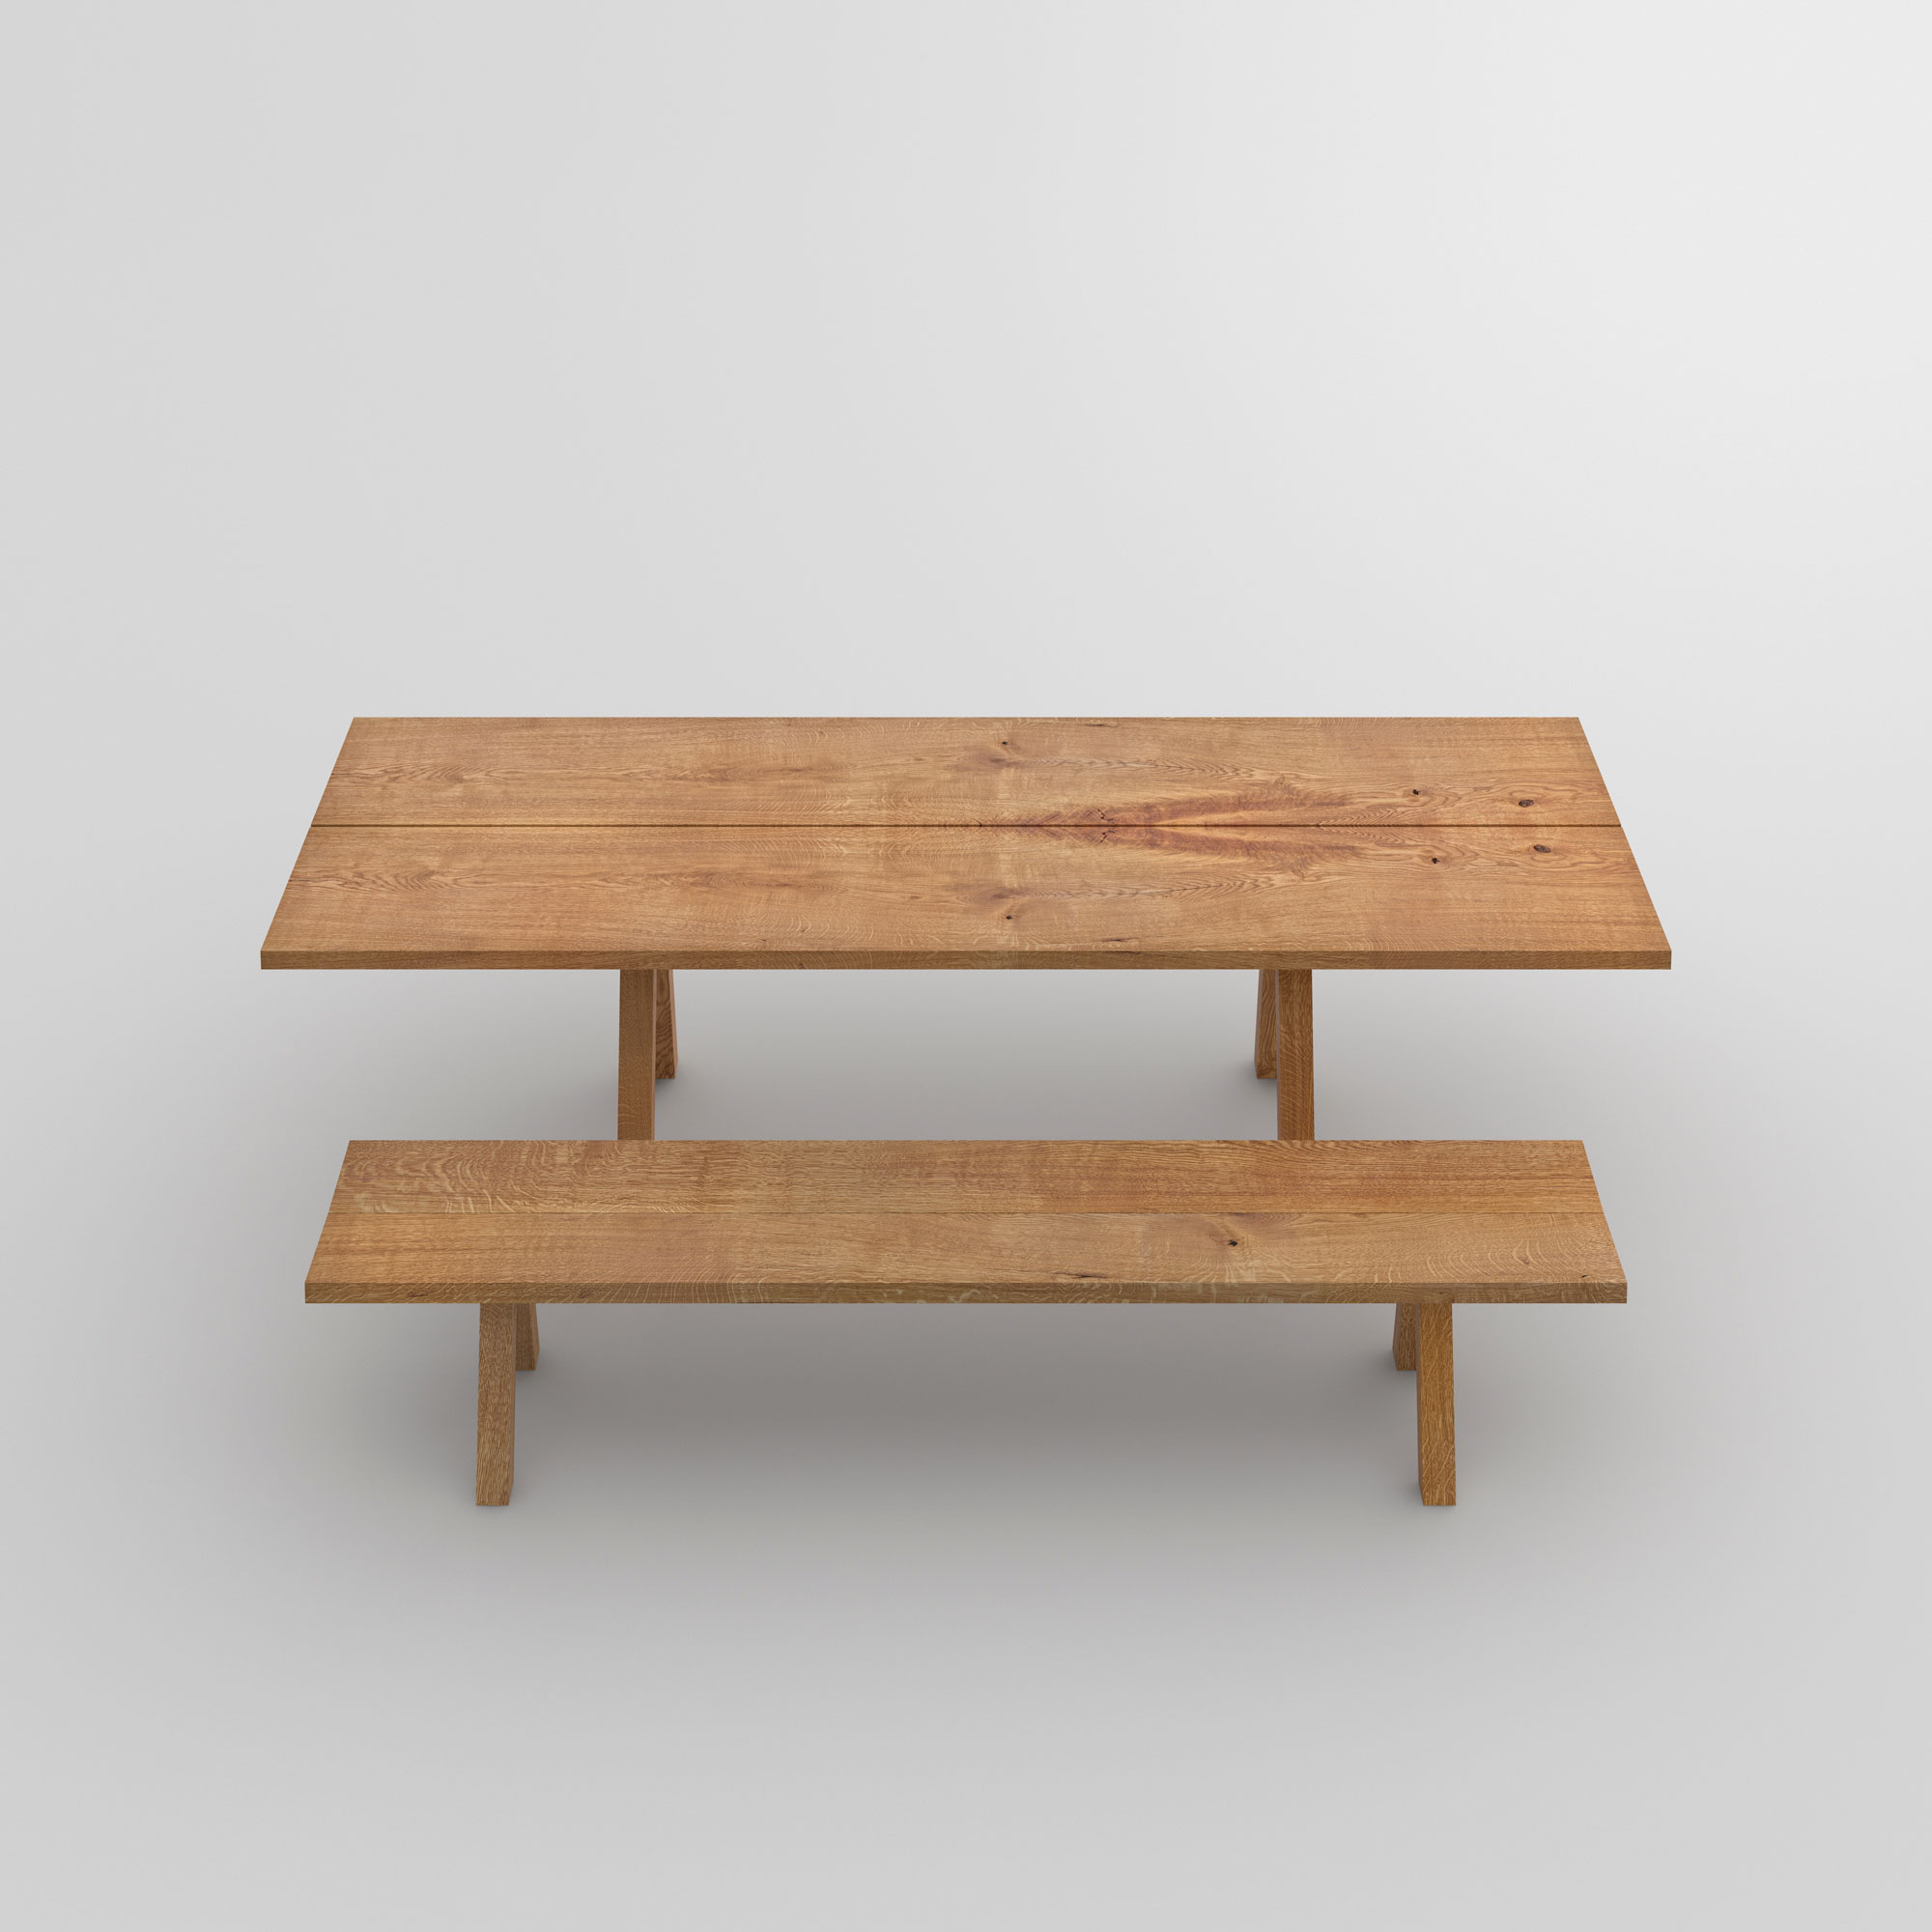 Wooden Designer Bench PAPILIO SIMPLE cam2 custom made in solid wood by vitamin design